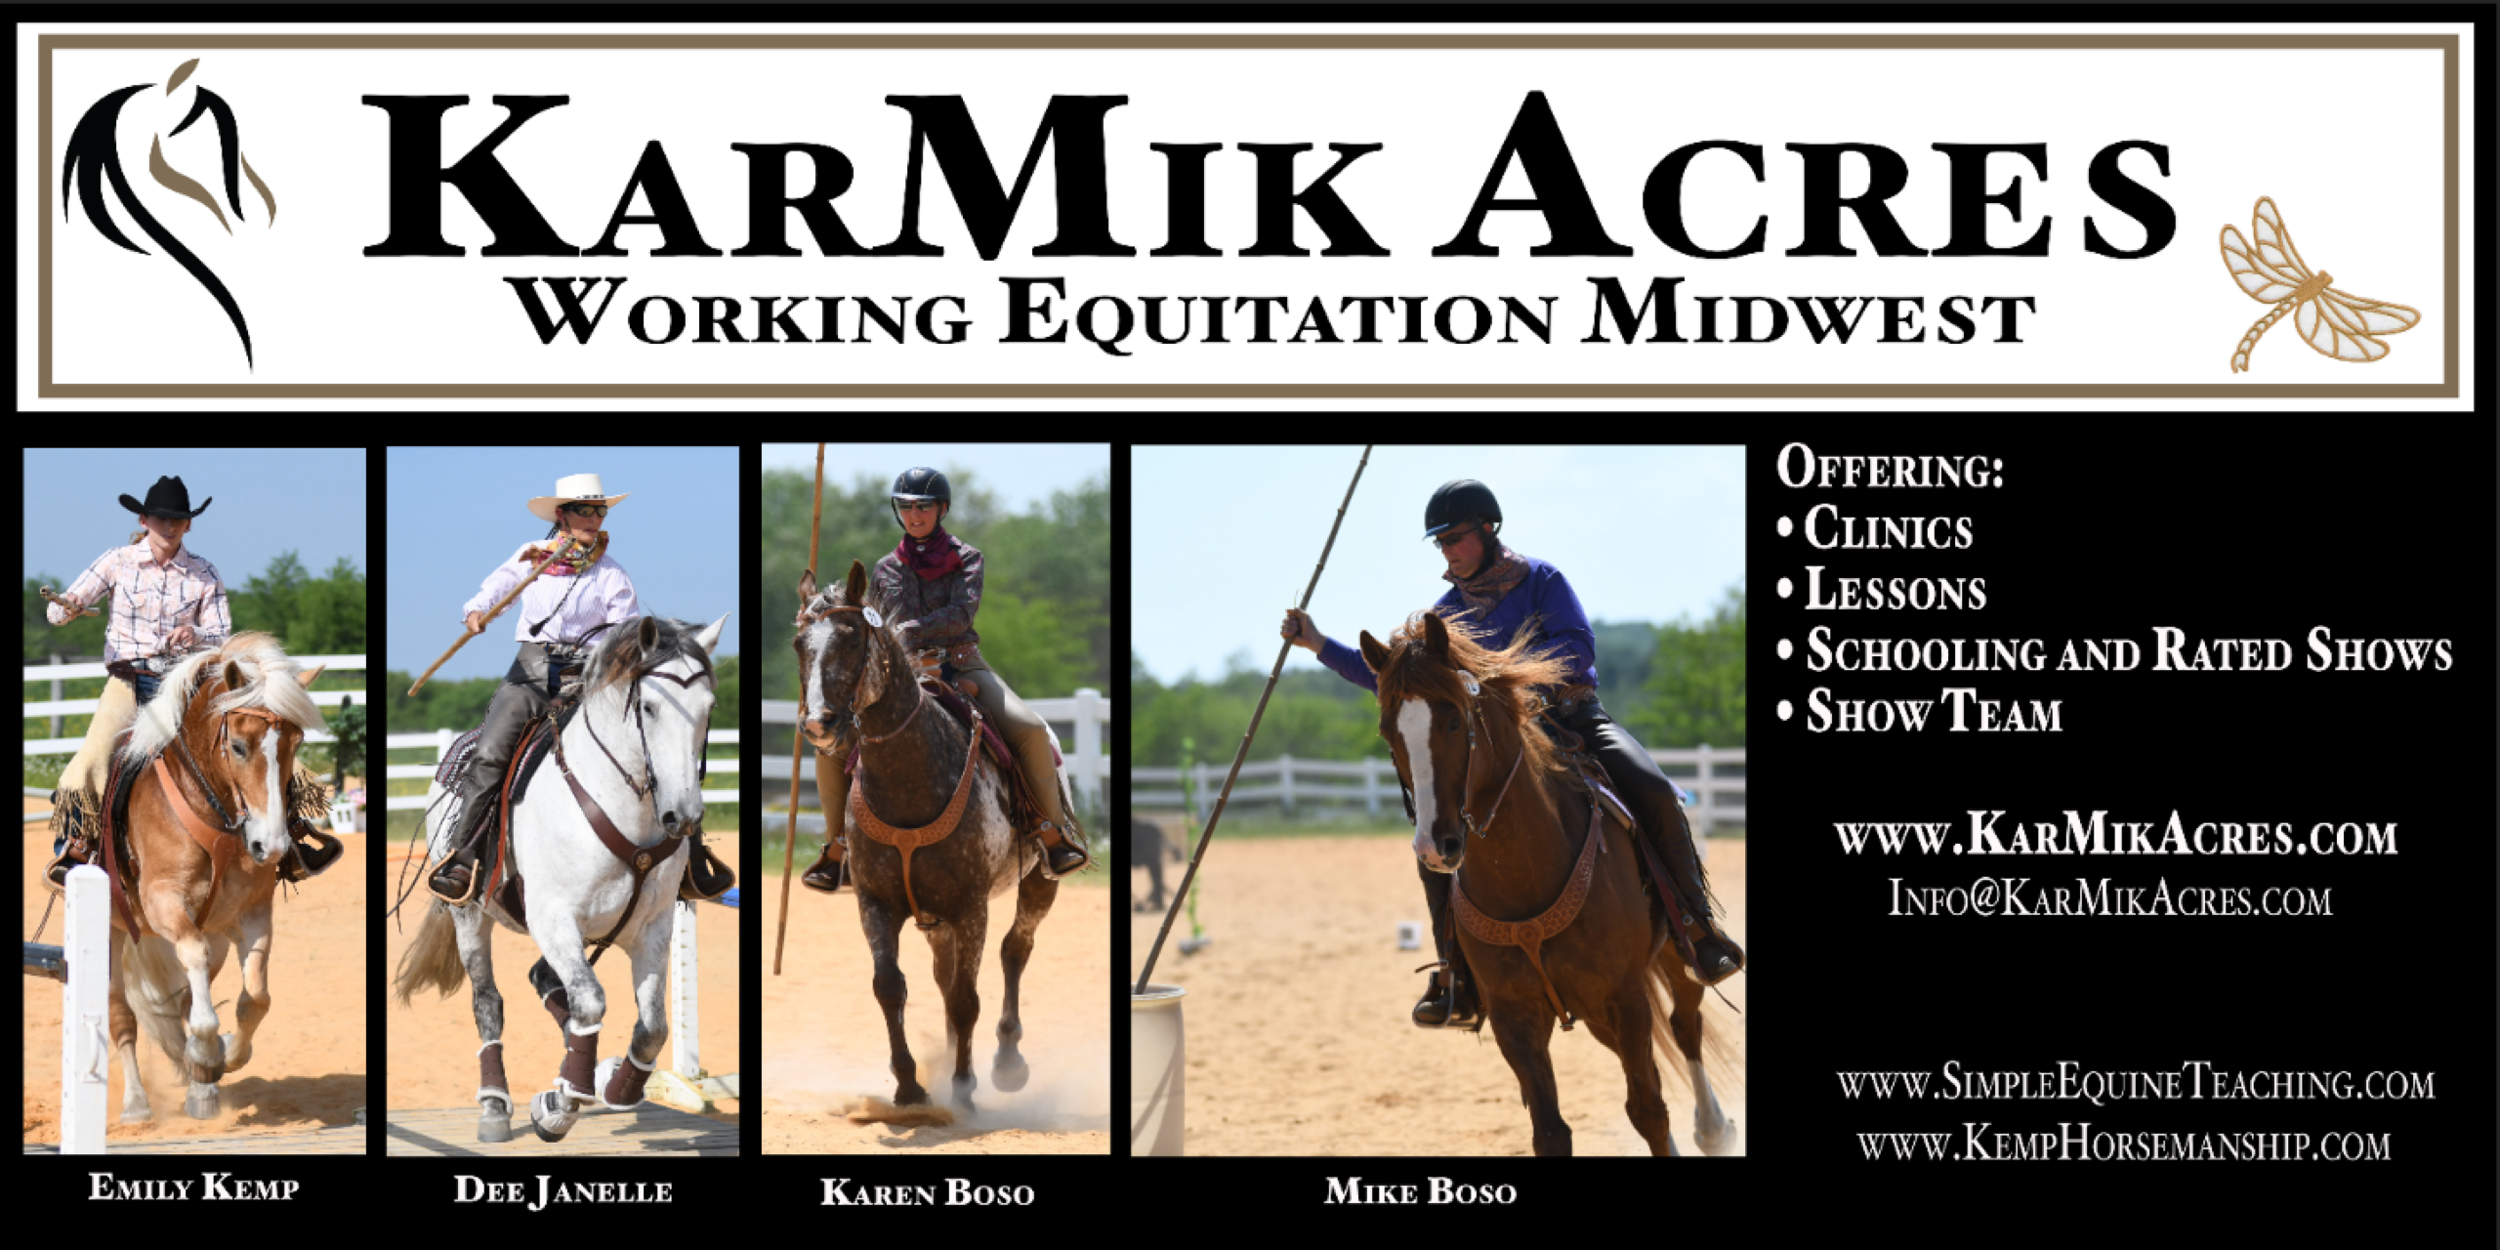 """KarMik Acres - Changing lives one horse at a time - Woodstock, Illinois -  www.karmikacres.com  - """"KarMik Acres would like to Congratulate all riders for making it to Nationals this year. Good luck to all! We hope to see some of you at our Midwest shows in 2019. Find our events on Facebook at KarMik Acres and Working Equitation Midwest."""""""